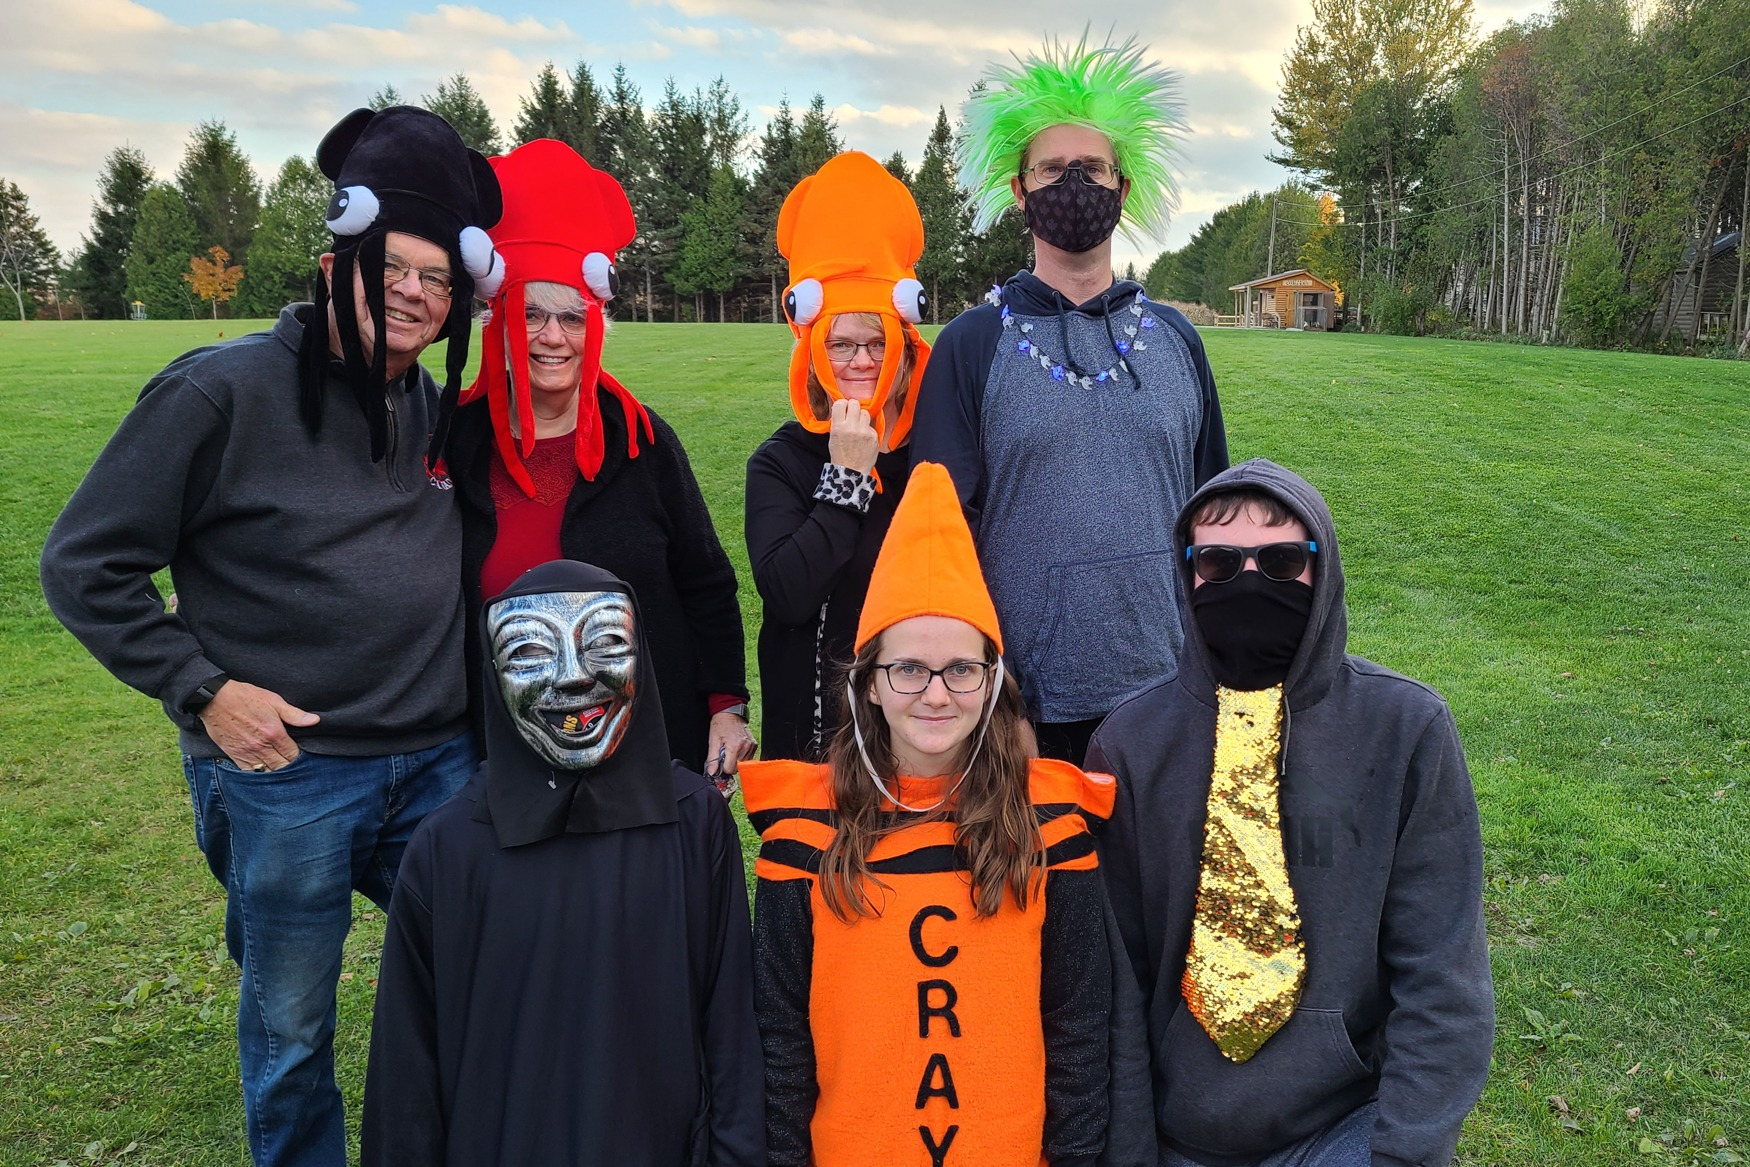 A group of people smile wearing octopus hats and crayon costumes.